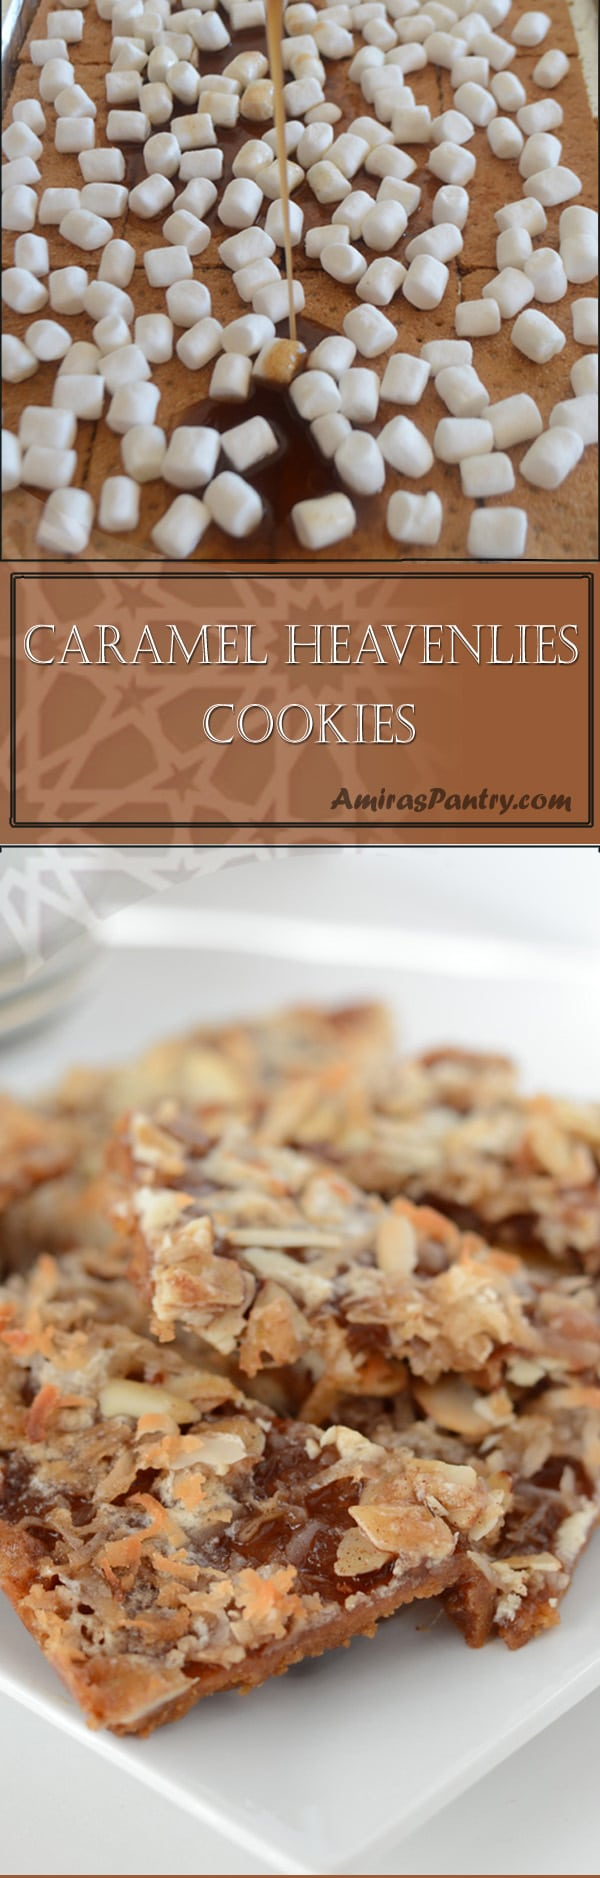 caramel heavenlies is simply caramel marshmallow with graham crackers. This is an easy, chewy and delicious cookie! I might even say, candy.